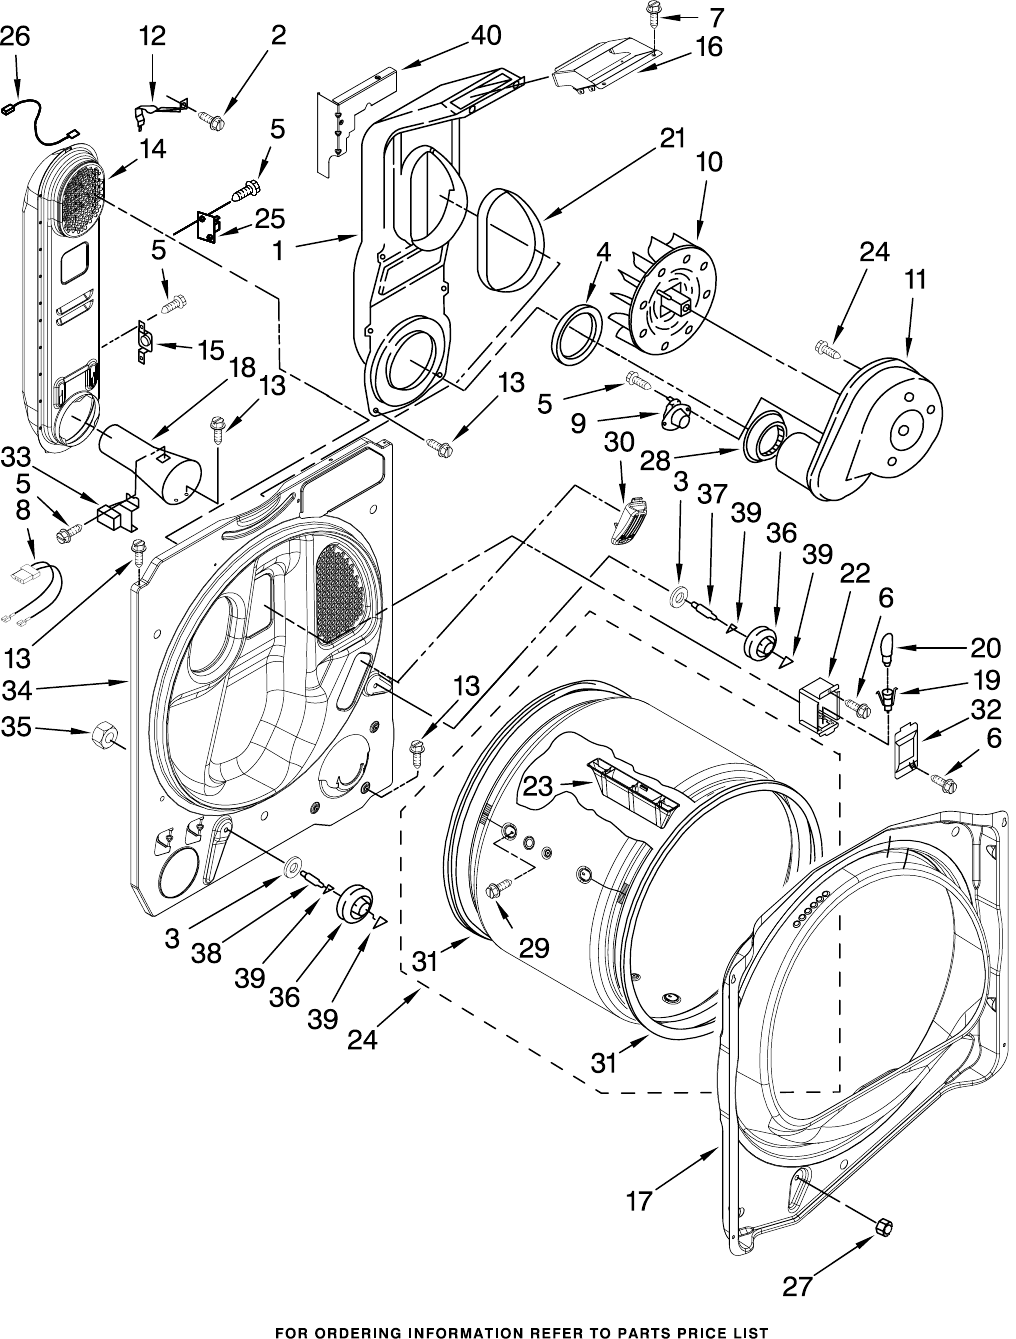 Page 5 of Whirlpool Clothes Dryer WGD6200SW1 User Guide